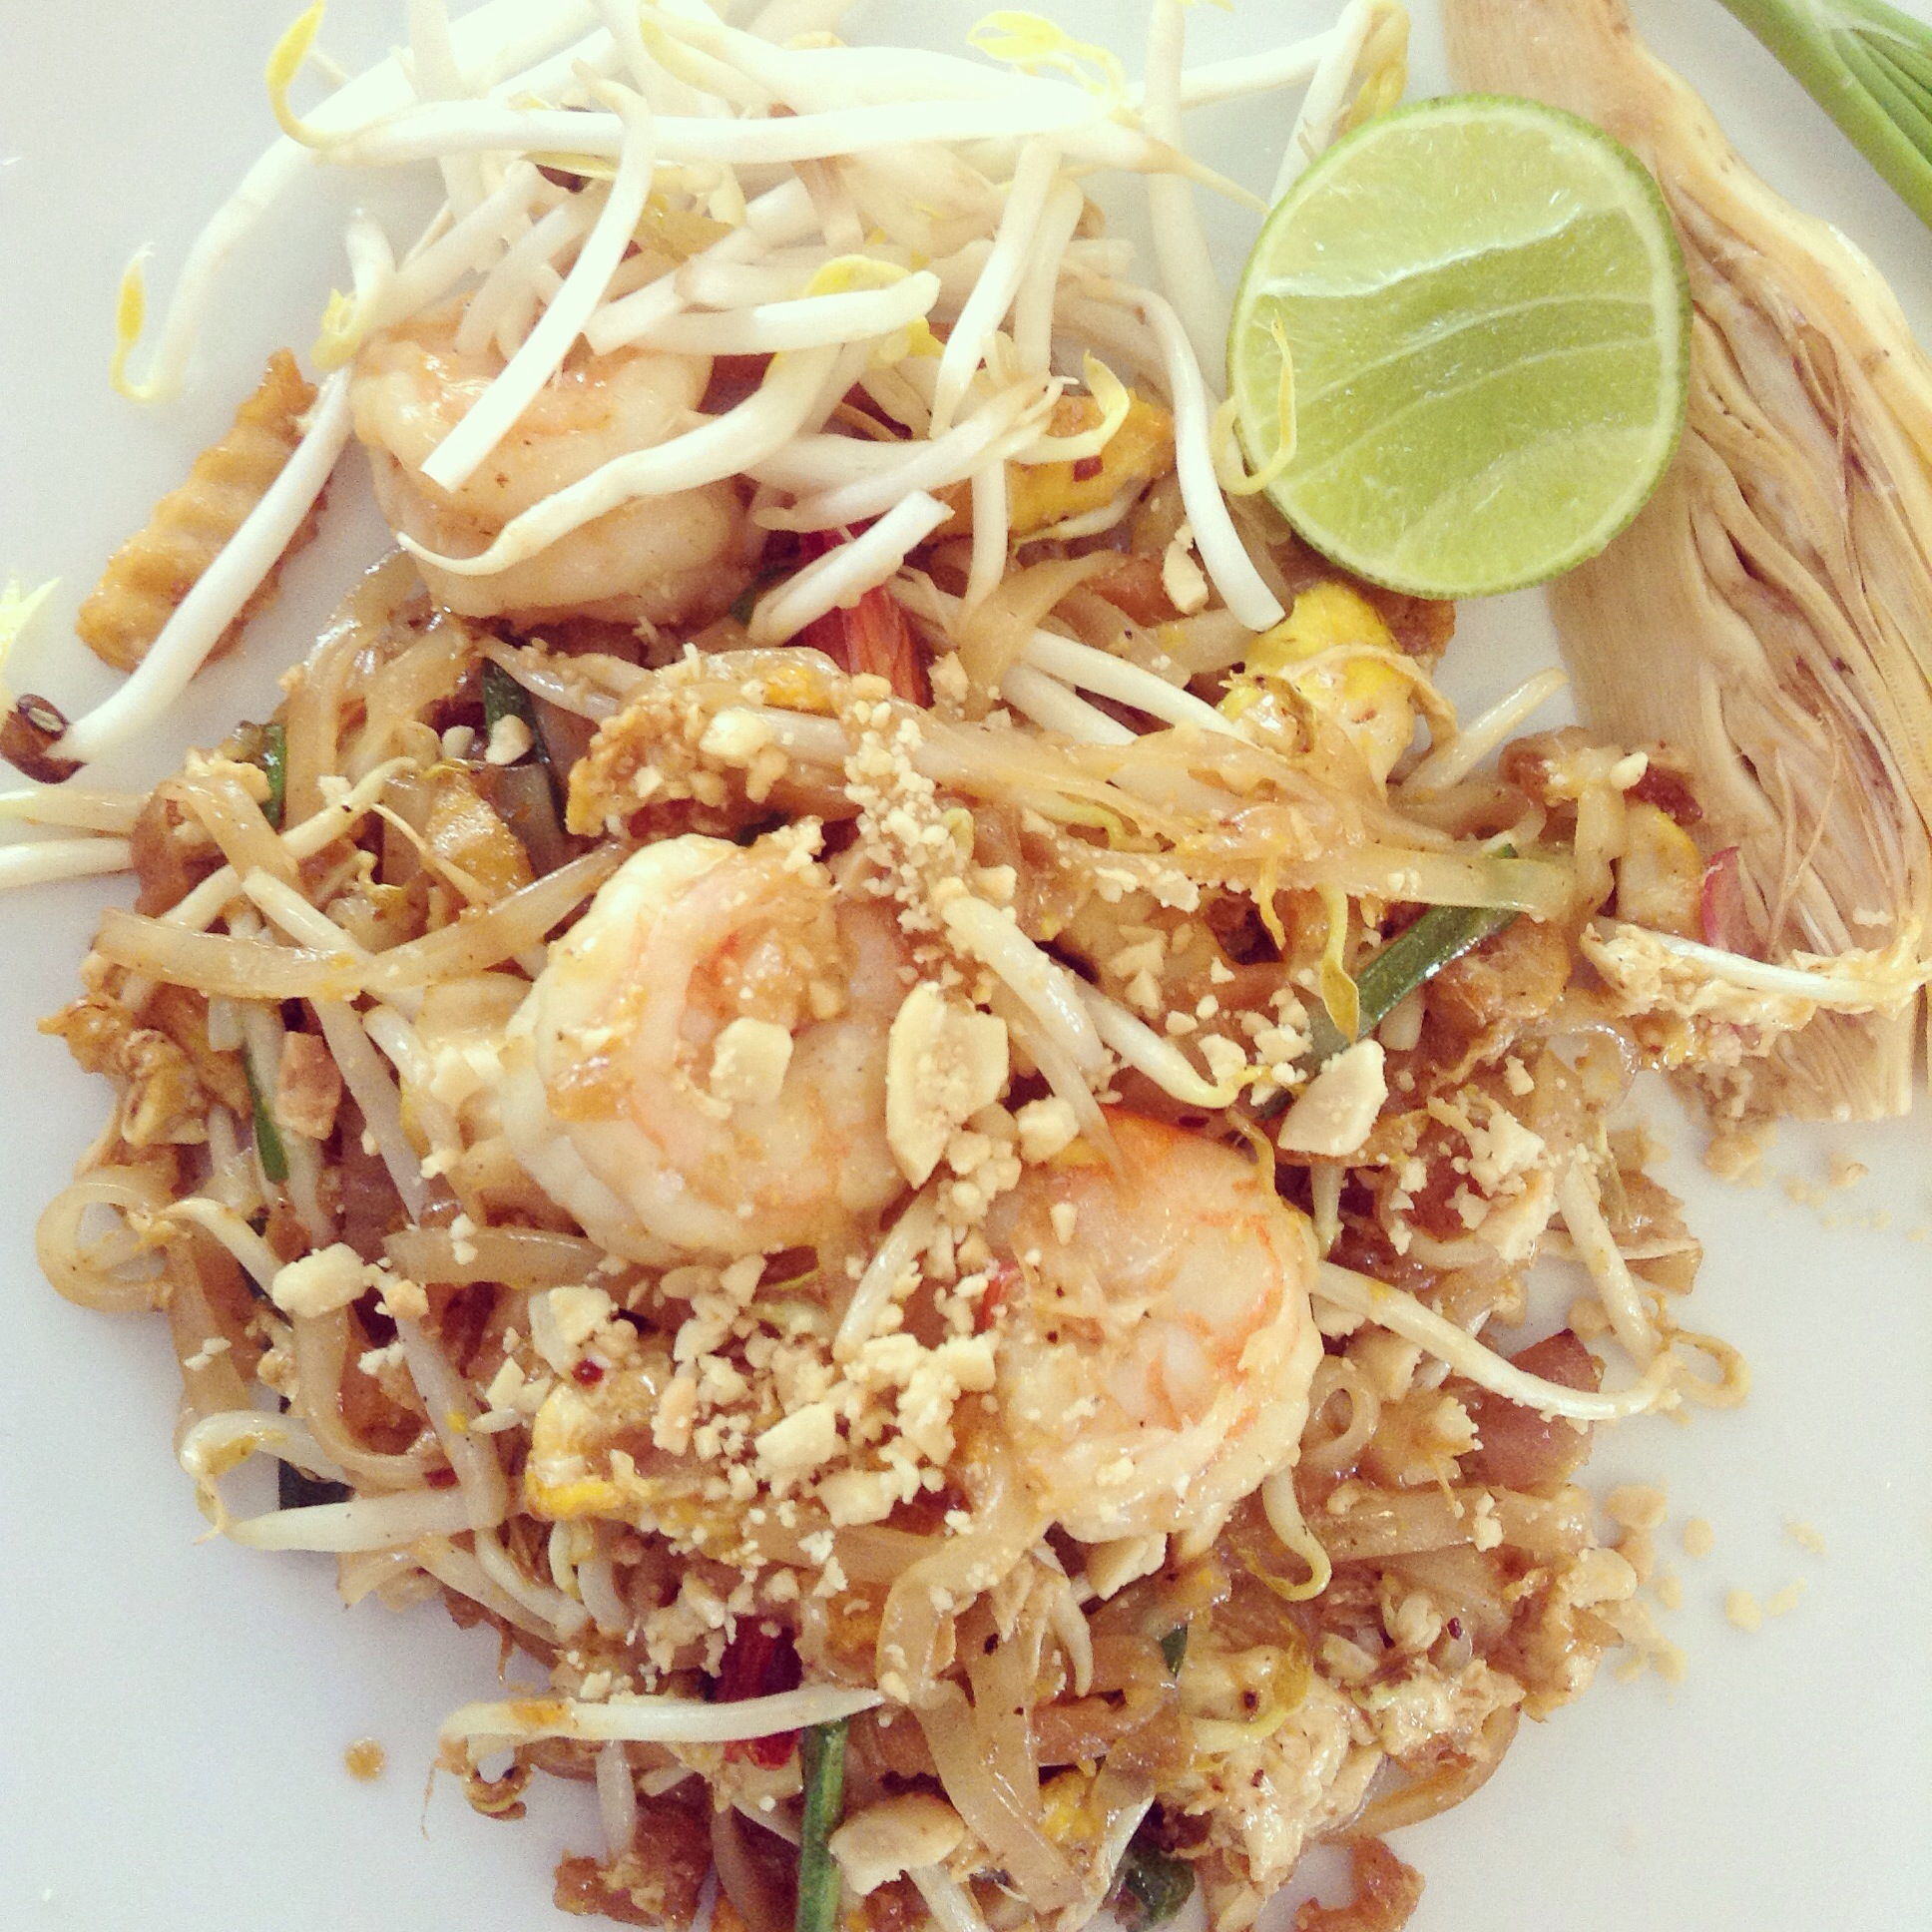 bangkok s street food confessions of a nomad pad thai